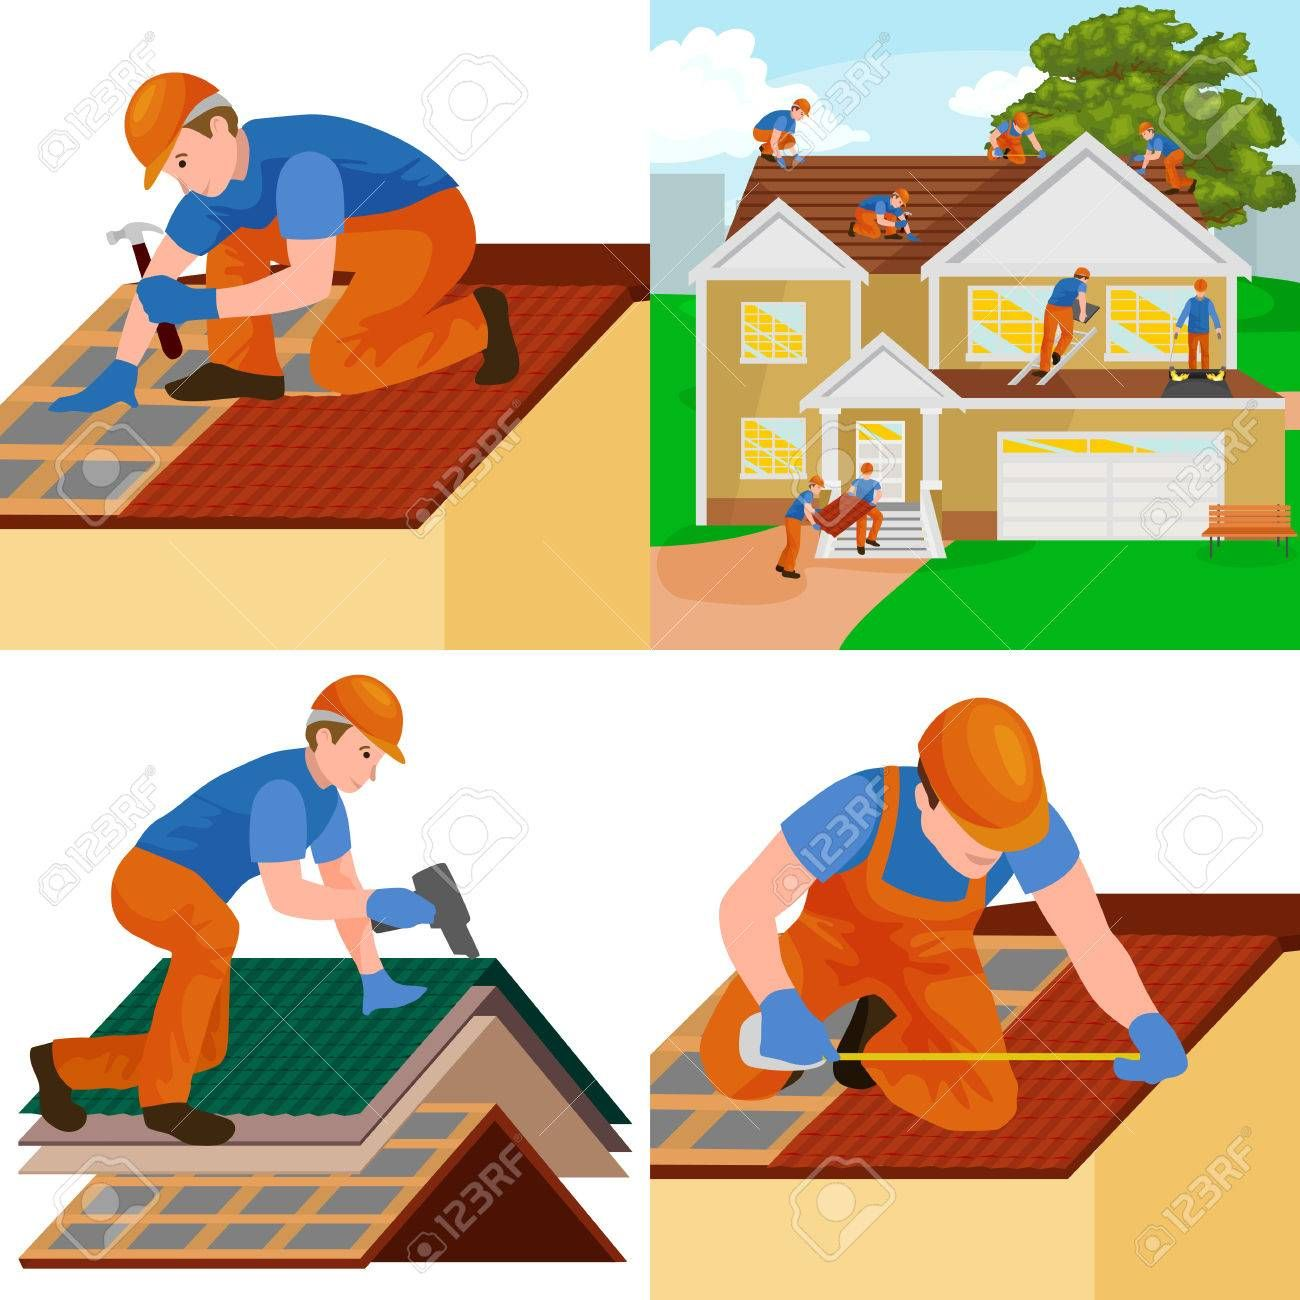 Roof Construction Worker Repair Home Build Structure Fixing Rooftop Tile House With Labor Equip Roof Construction Woodworking Projects Plans Installing Siding